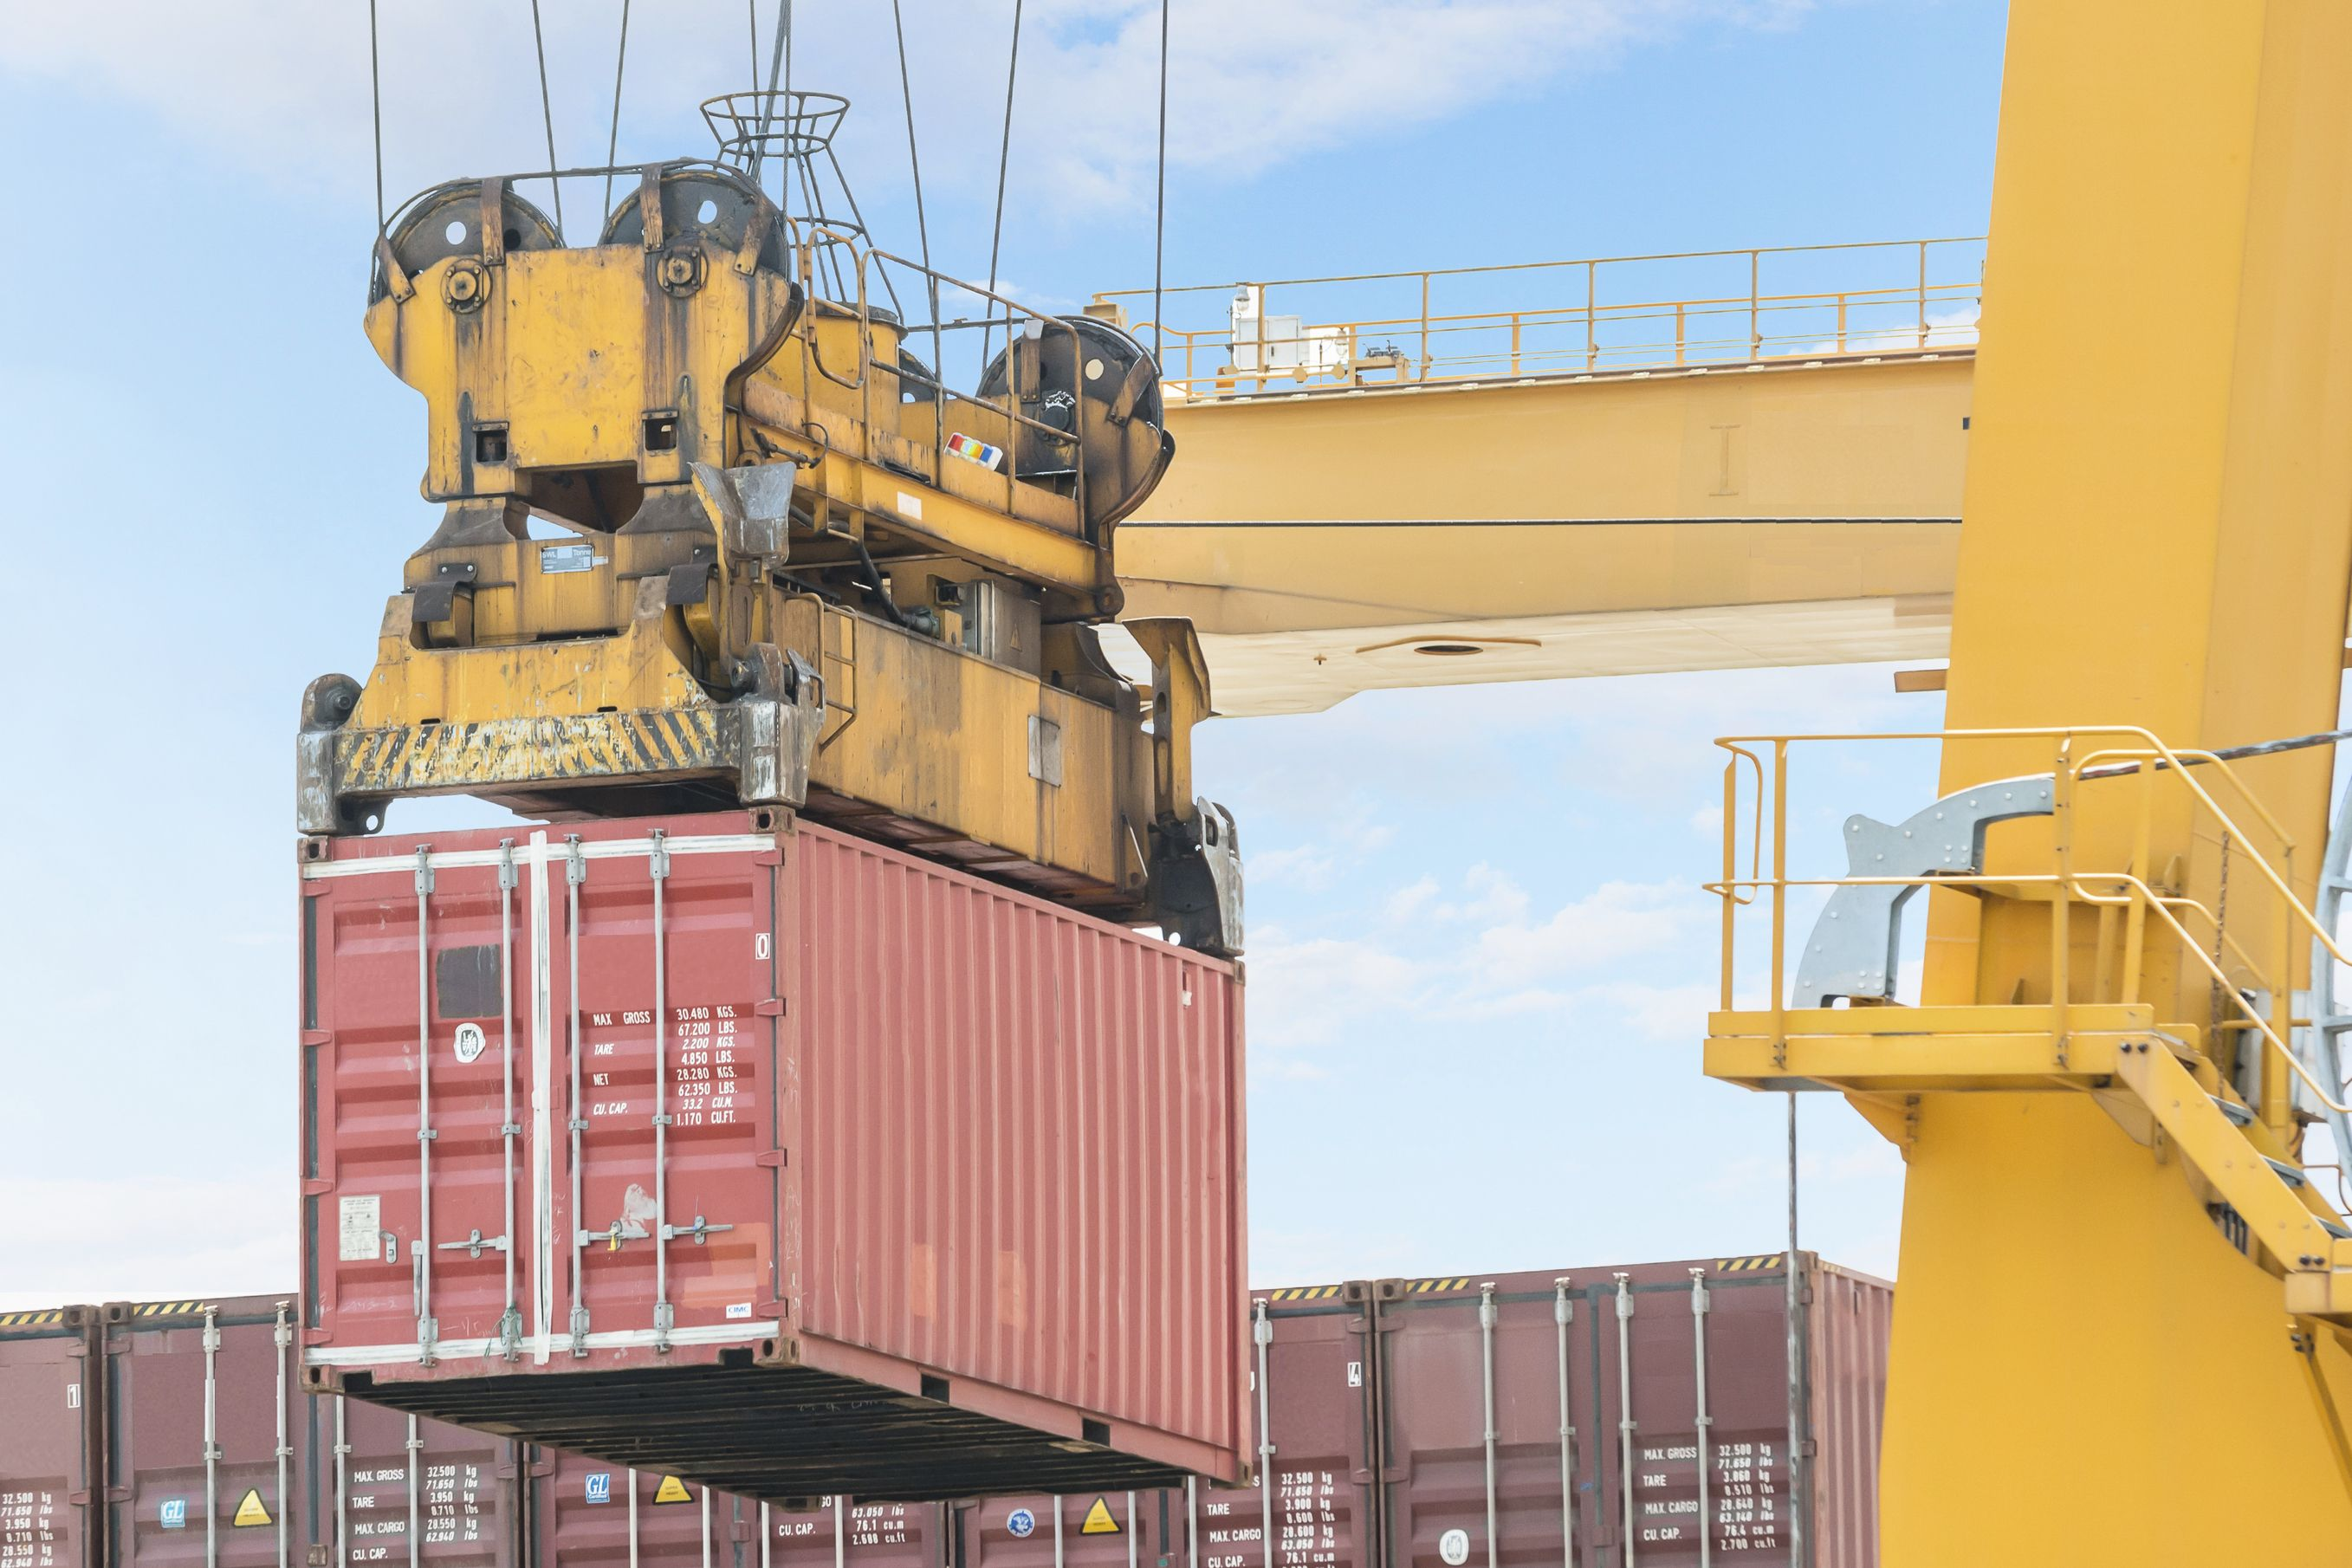 Intermodal containers need to be monitored to keep cargo integrity